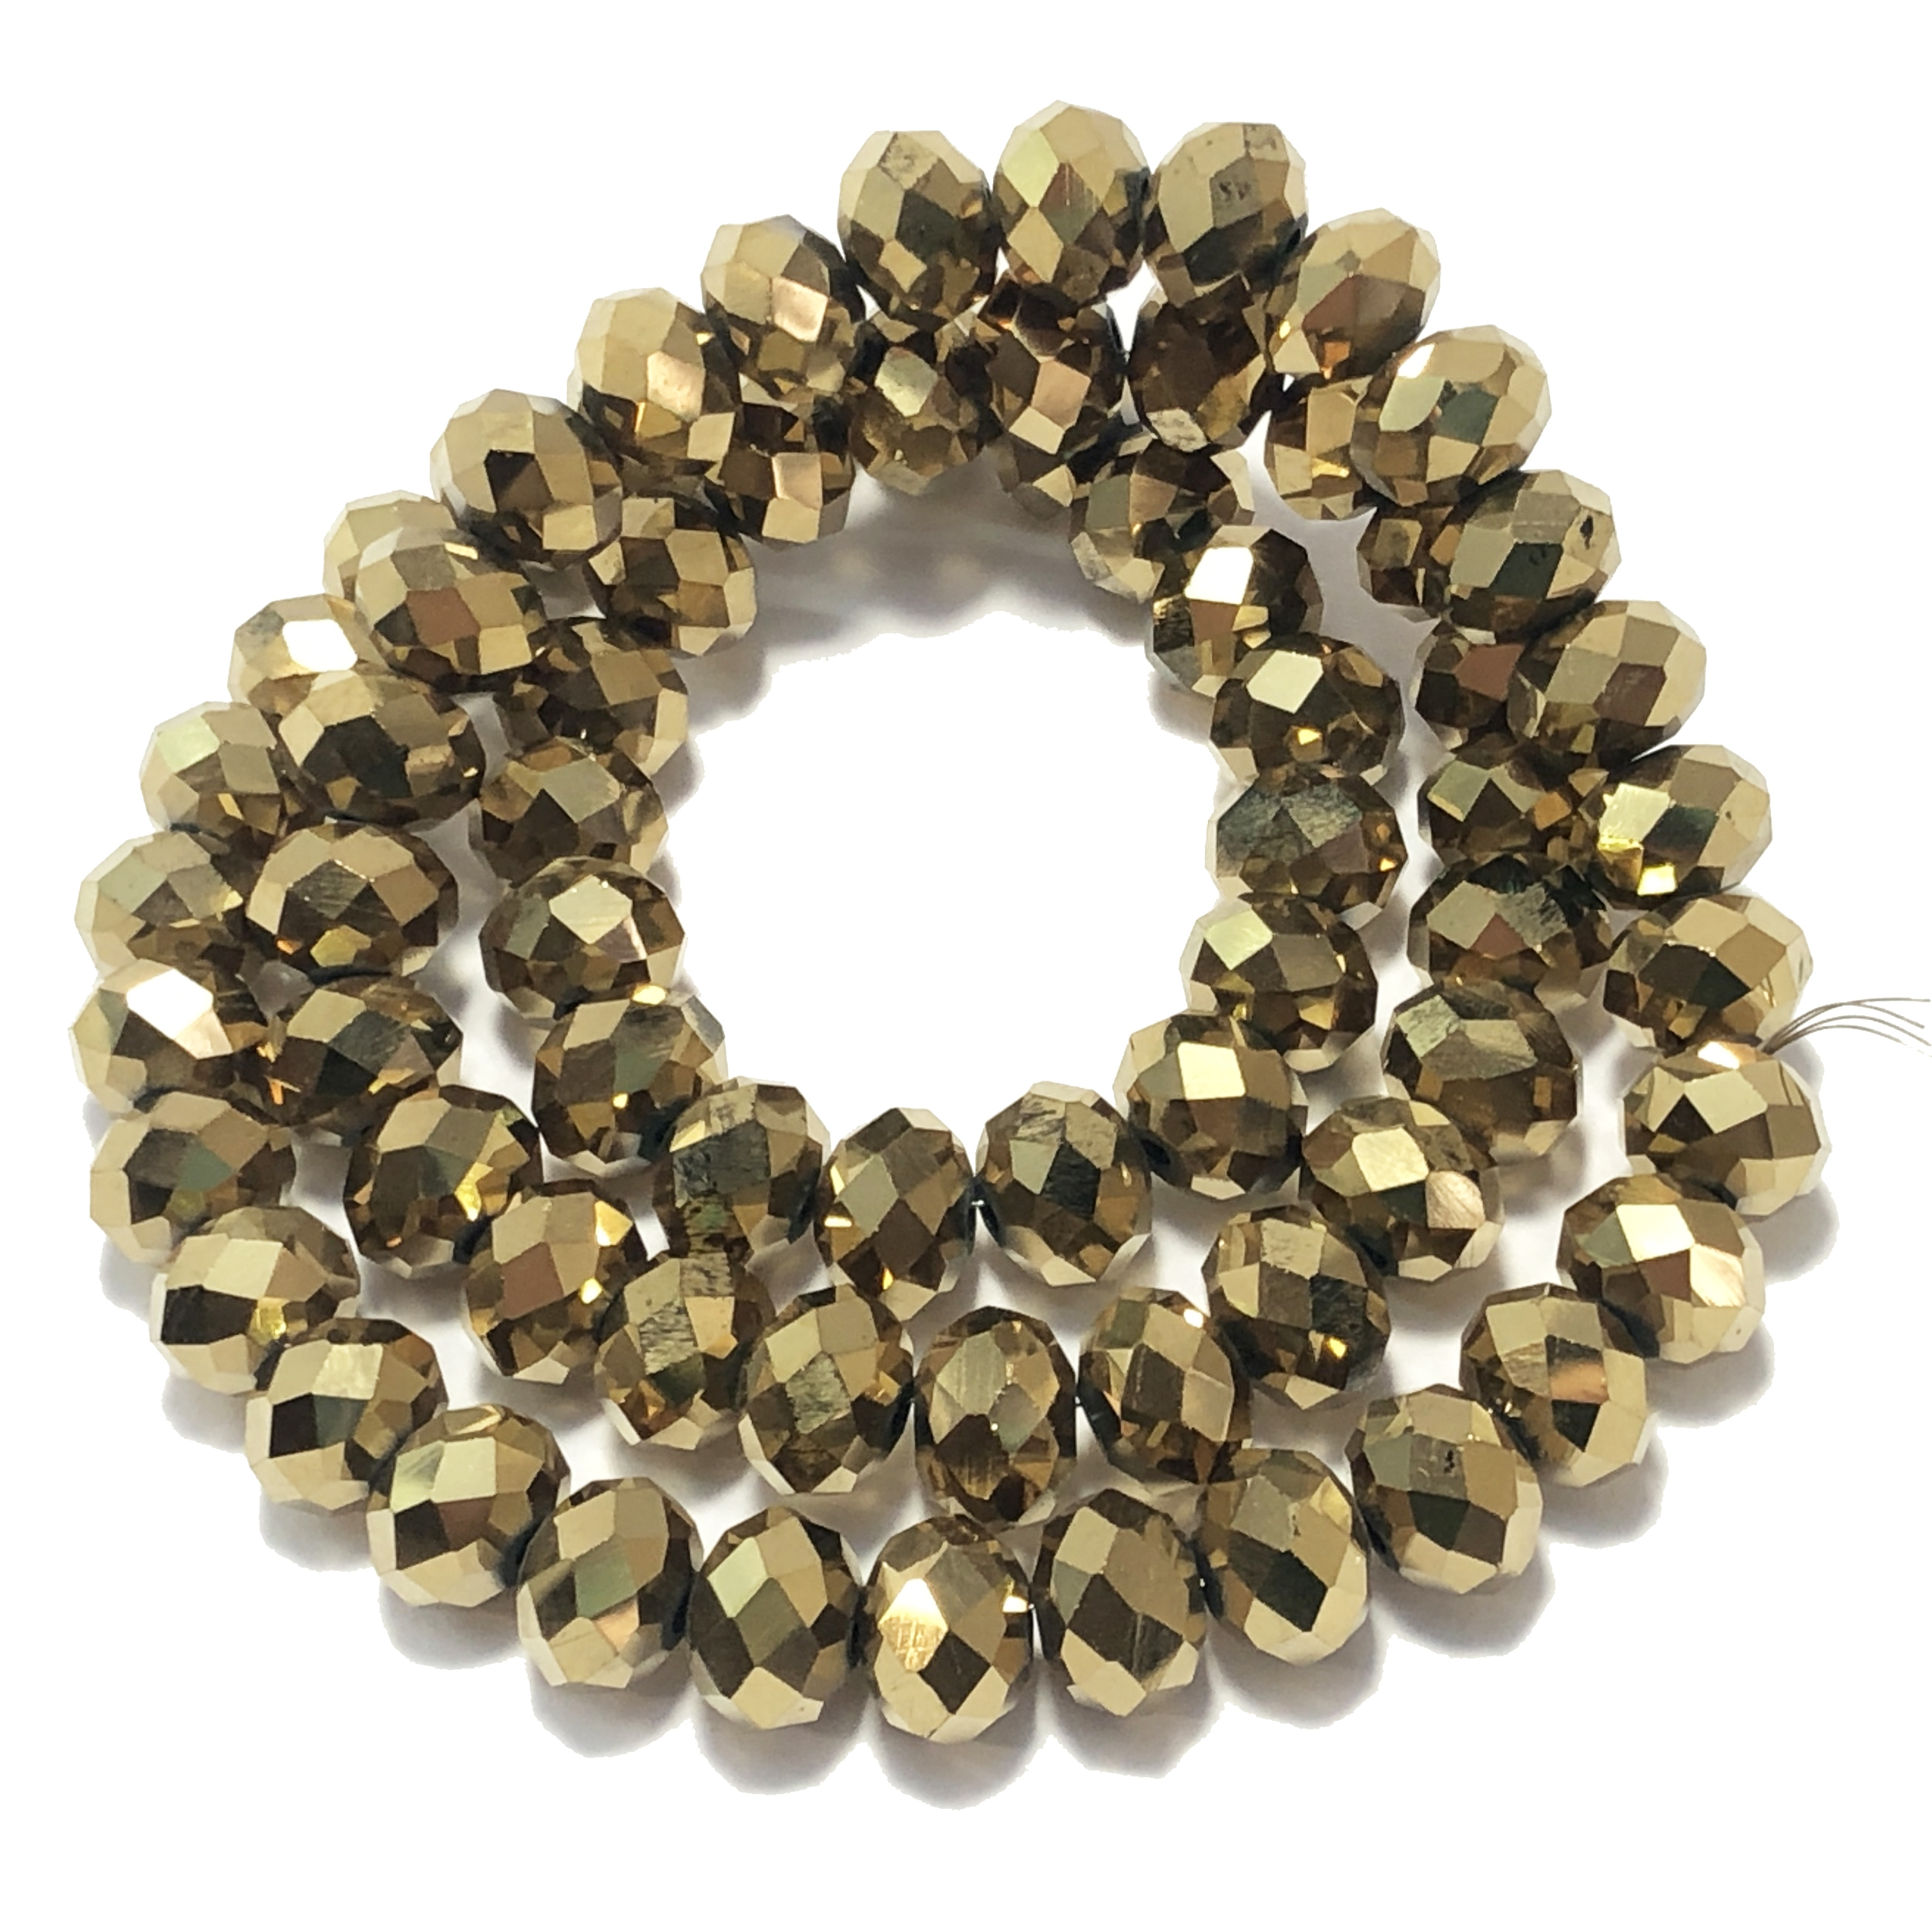 glass abacus beads, electroplate gold plate, 09503, glass beads, faceted beads, beading supplies, jewelry making supplies, bsueboutiques, temp strung beads, vintage jewelry supplies, vintage beads, crystal clear, multicolor